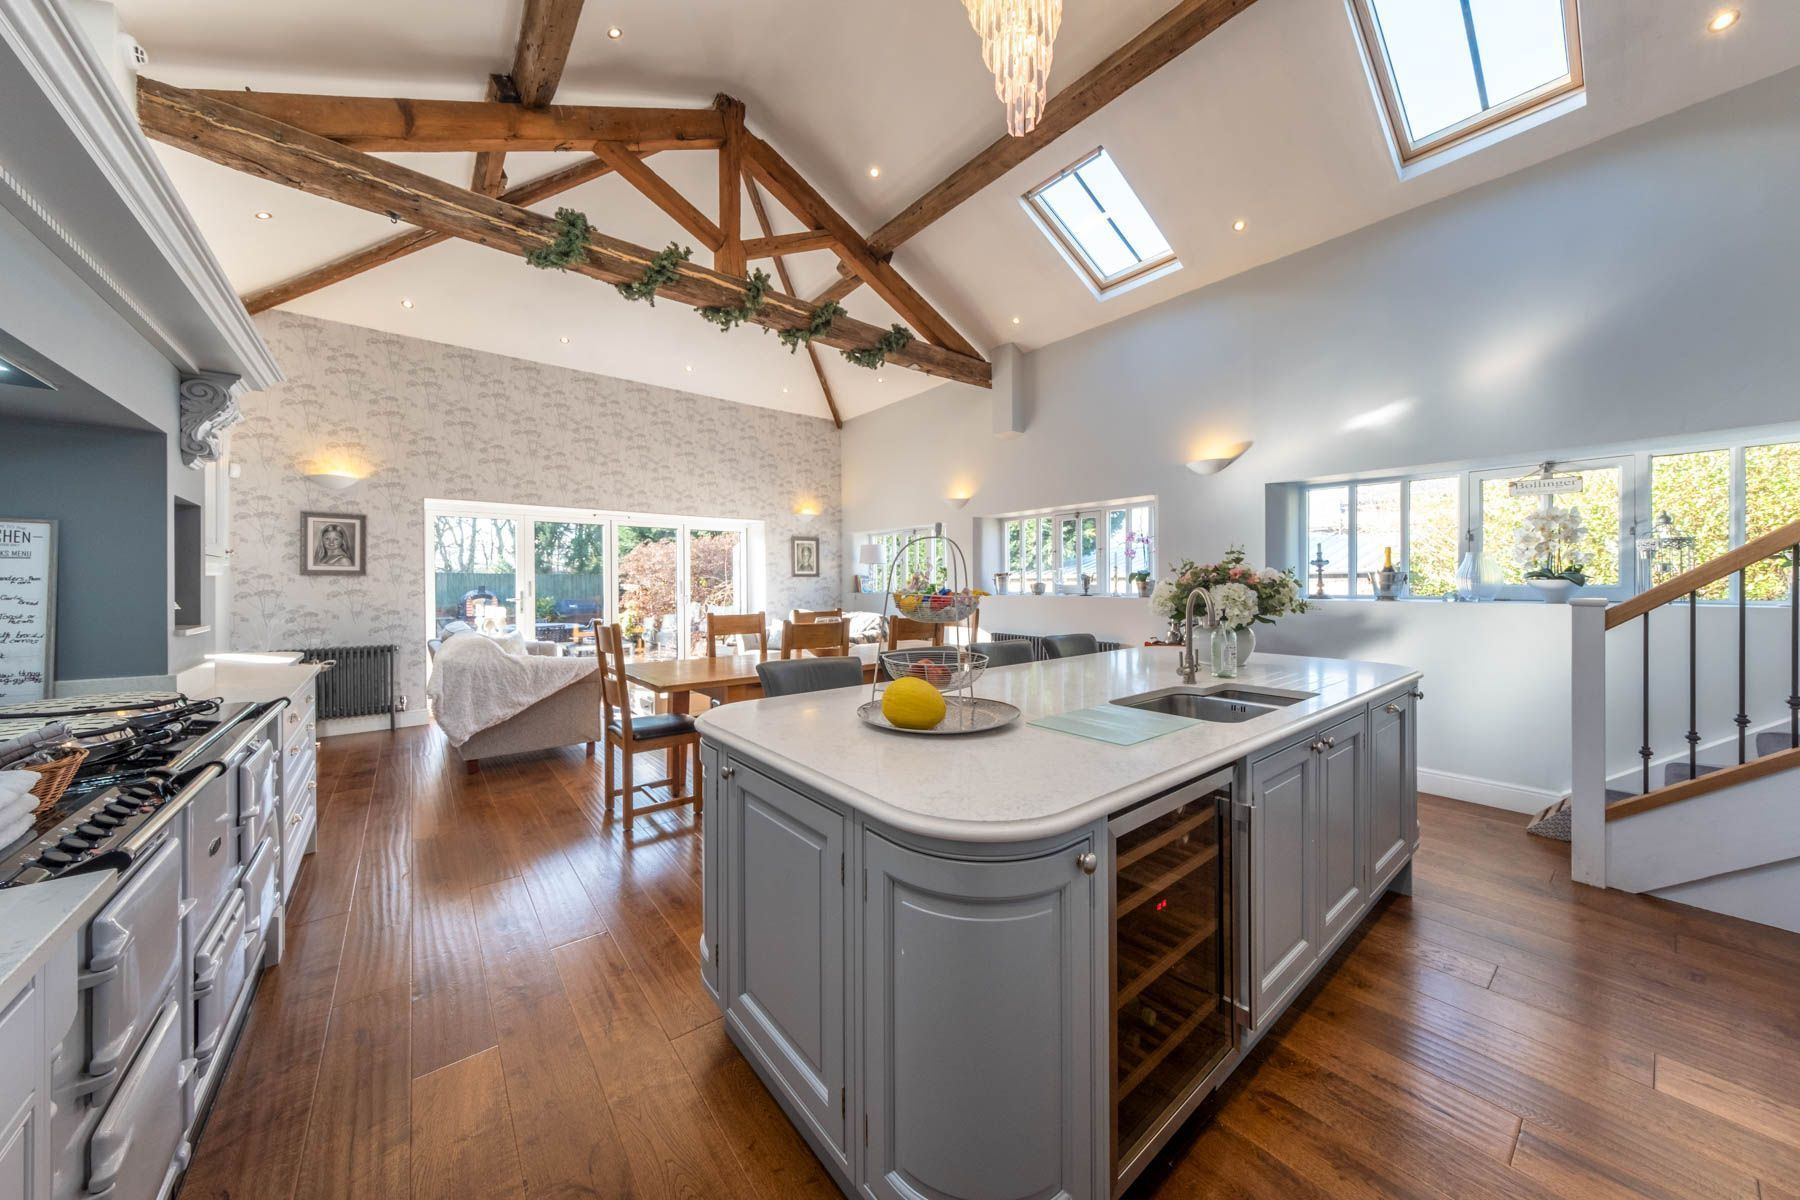 Country Kitchen With Vaulted Ceiling Island Dinning Space And Skylights Vault Ceiling Co Country Kitchen Vaulted Ceiling Kitchen Farmhouse Kitchen Decor